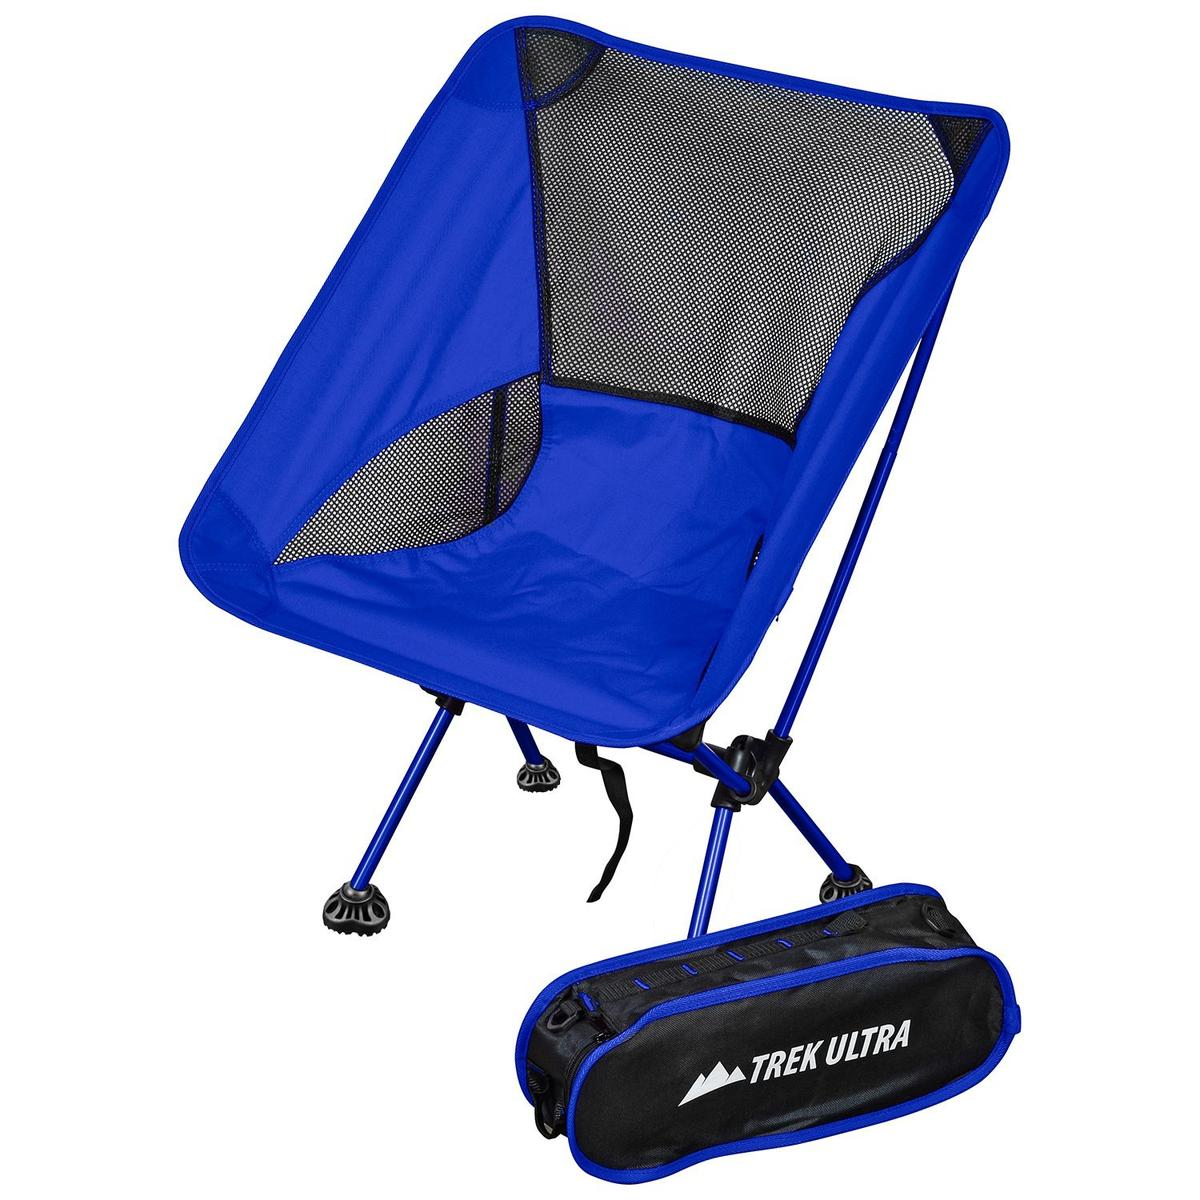 Royal Blue Chair Chair Royal Blue Chair Portable Camping Travel Outdoor Trekultra With The Folding Chair Carrying Around Bag